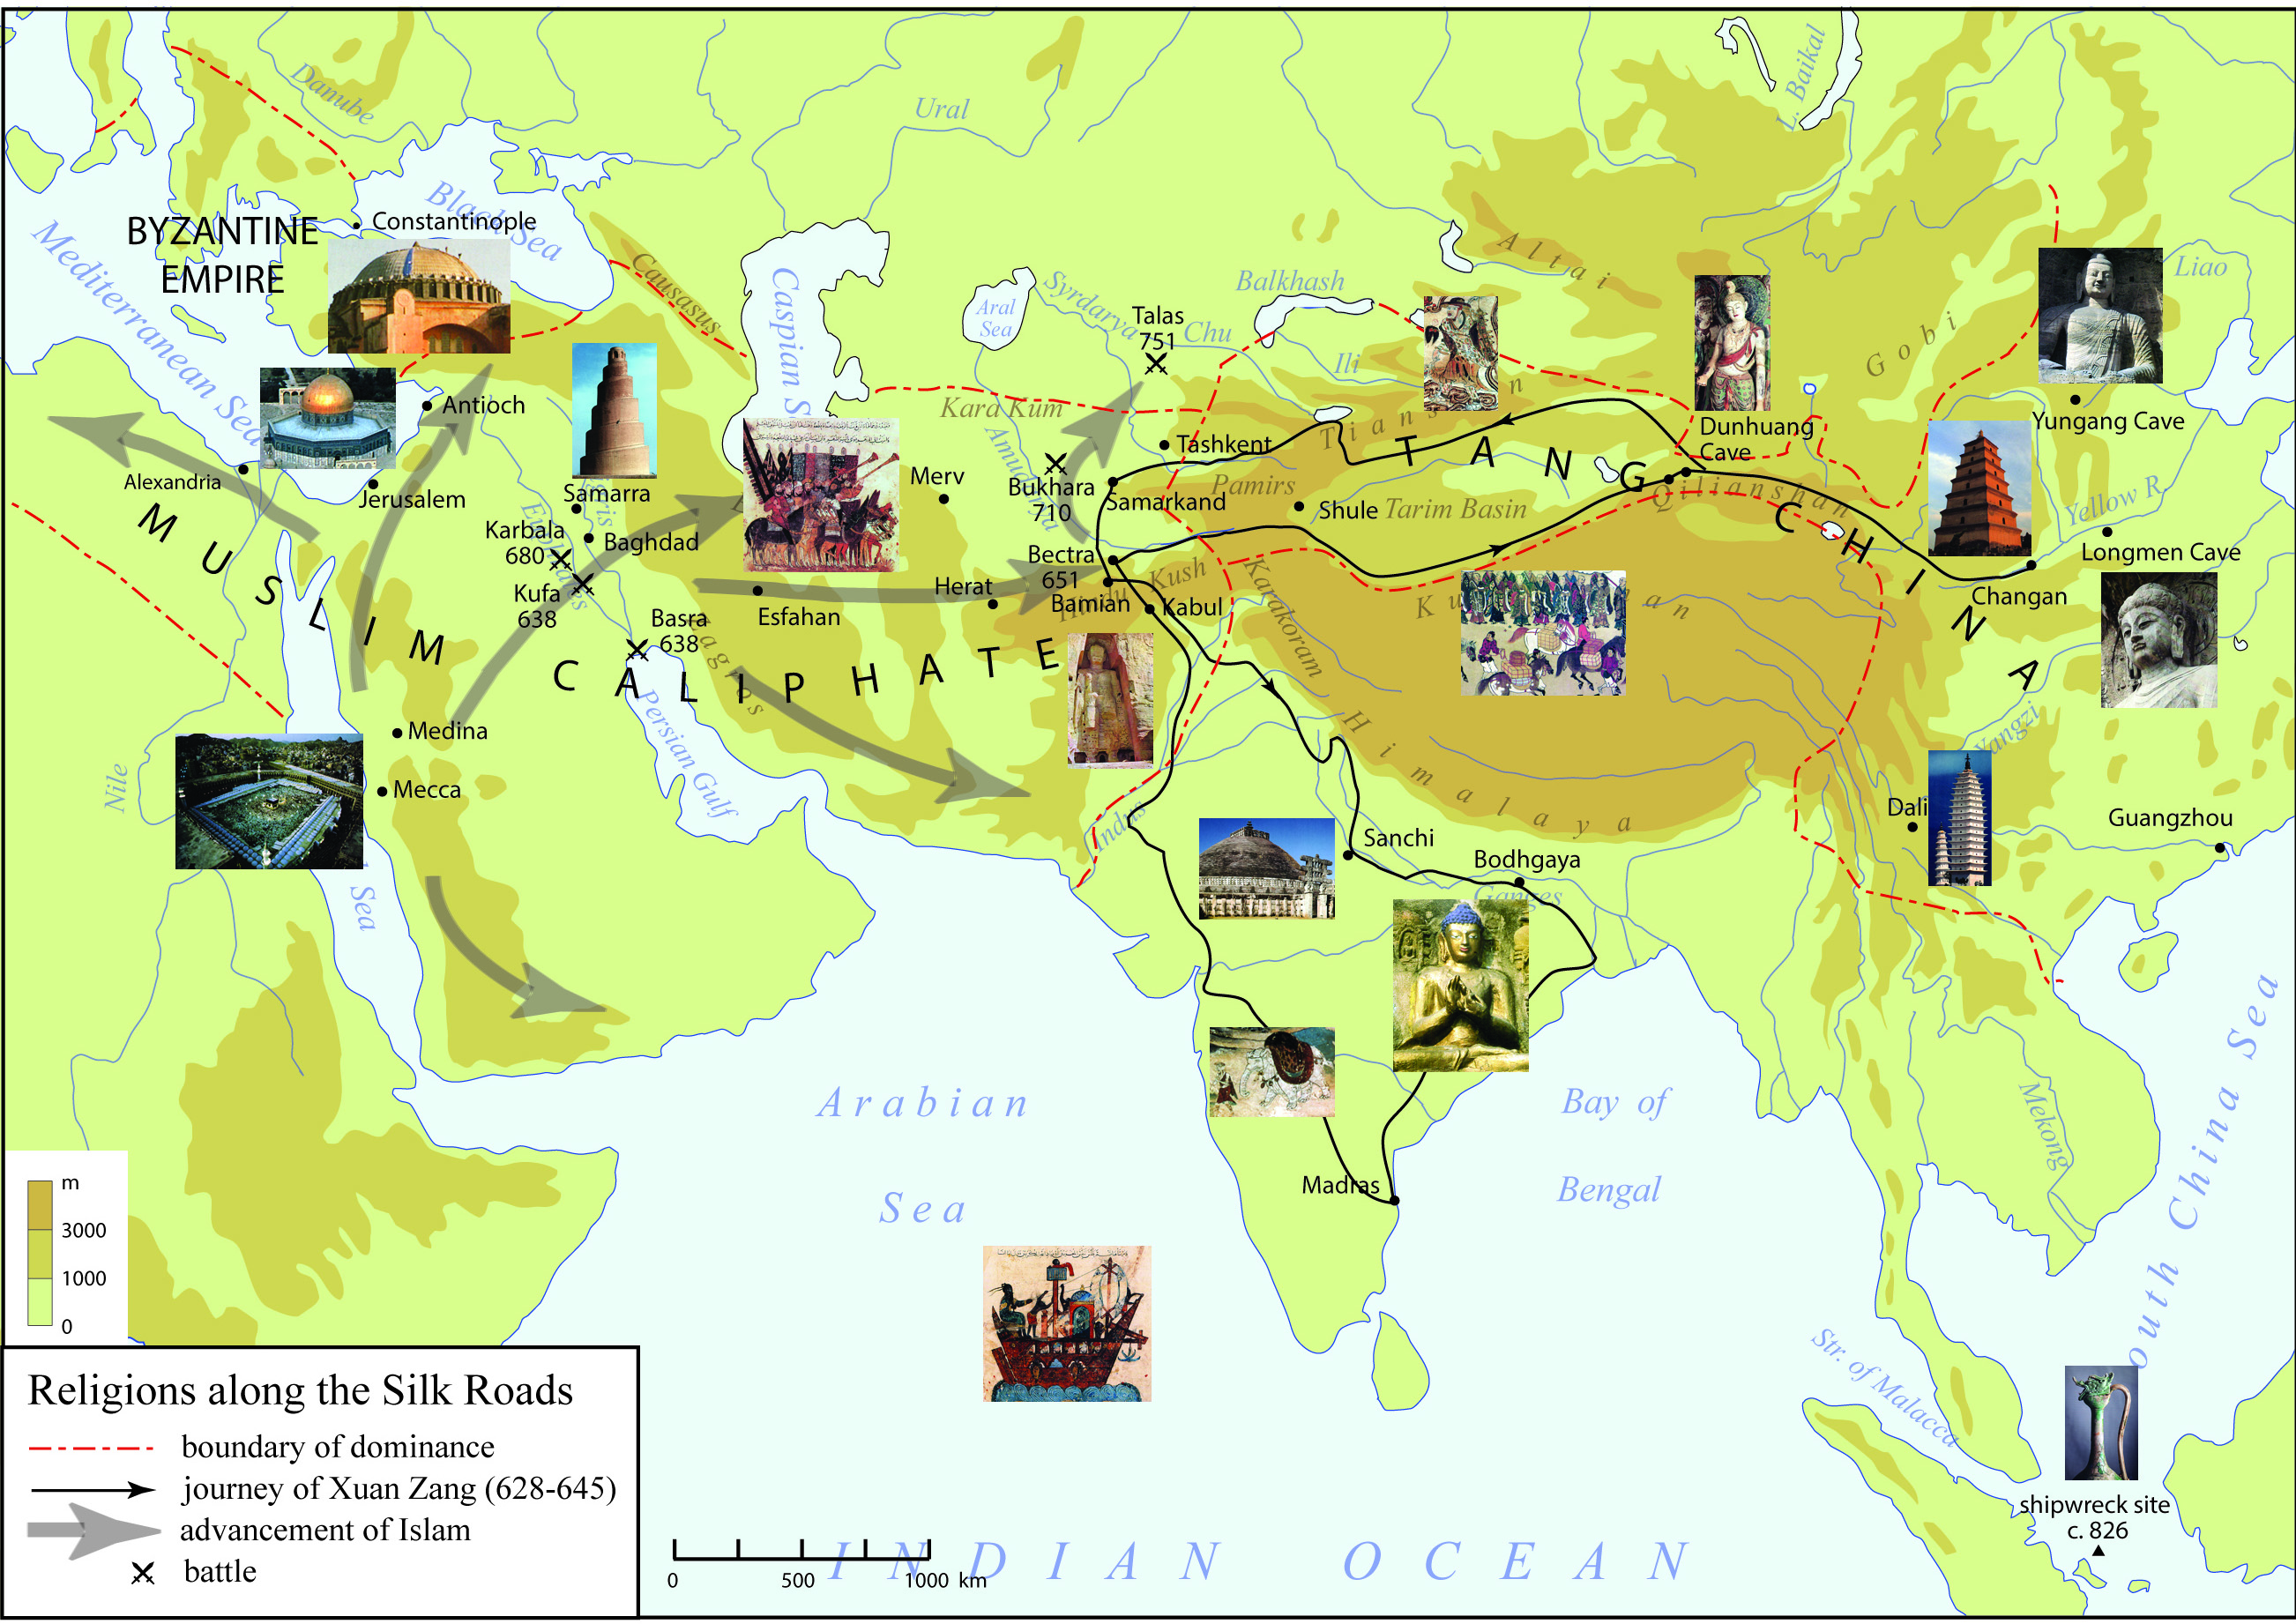 change in patterns of interactions along silk road Analyze continuities and changes in patterns of interactions along the silk roads from 200 bce to 1450 ce.